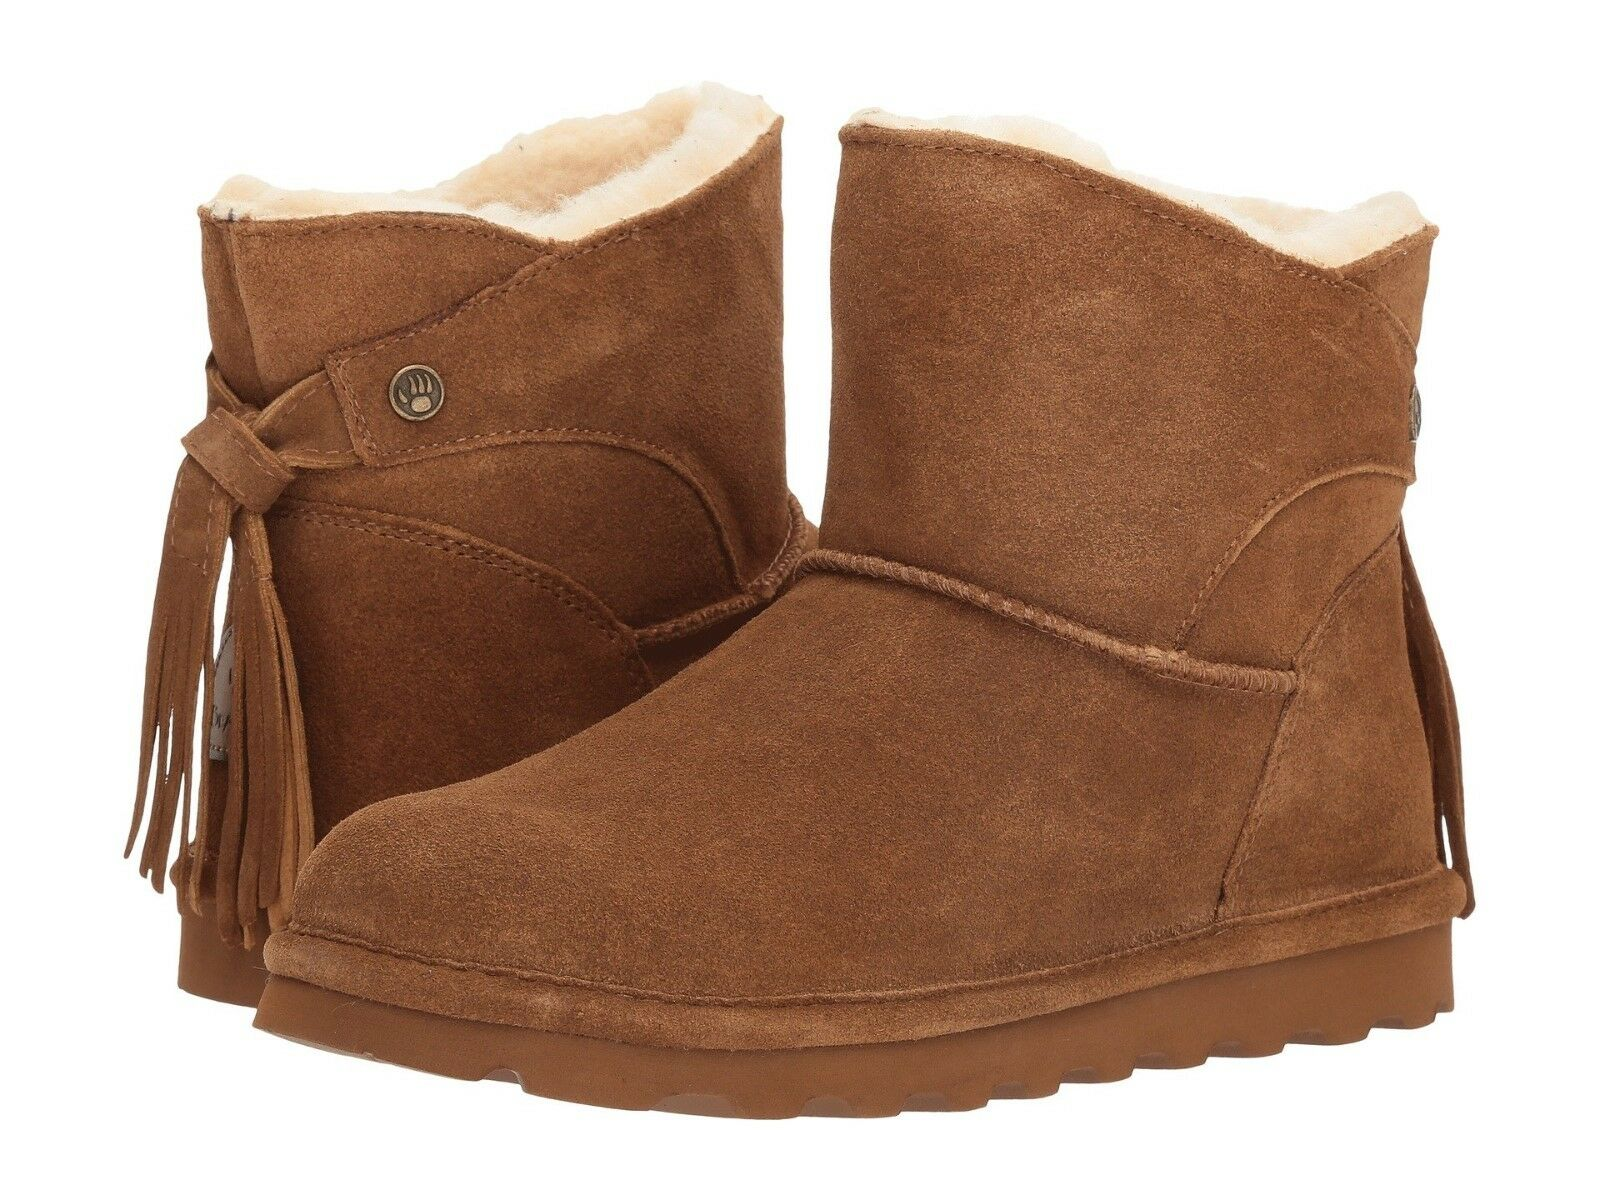 Women's Bearpaw Natalia Warm Fur Boots Hickory Suede 2013W